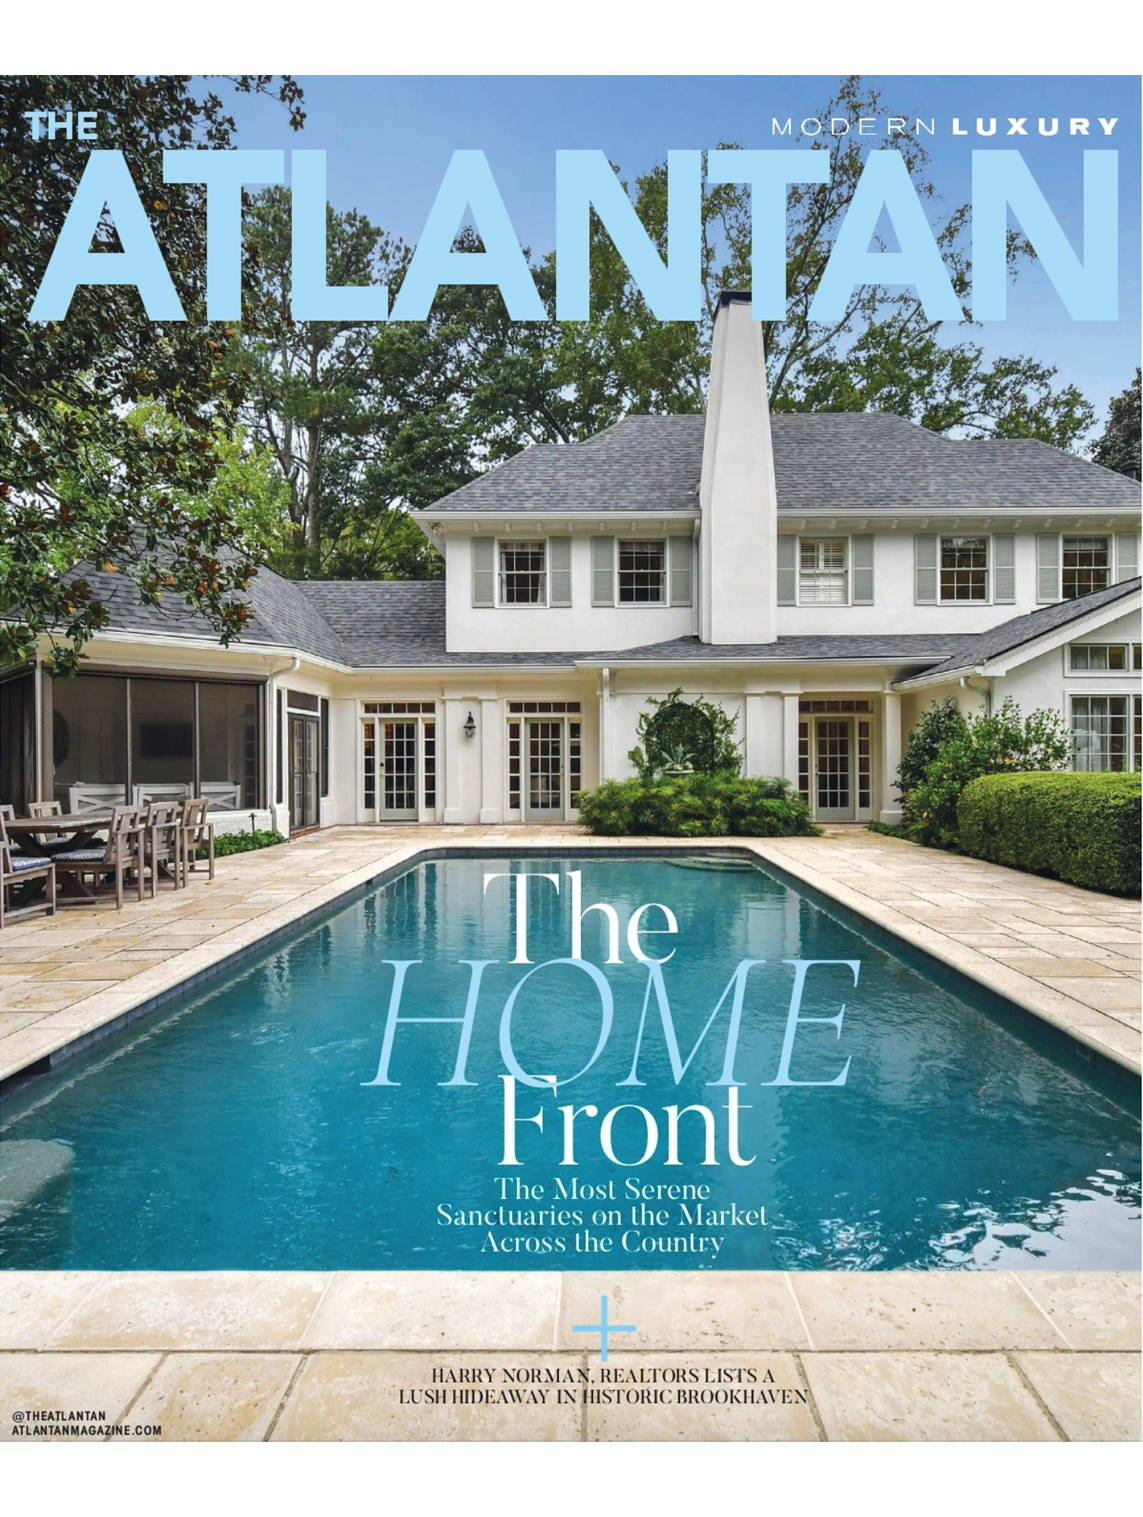 Modern Luxury The Atlantan February 2021 Issue Featuring Adelina Social Goods and The Works